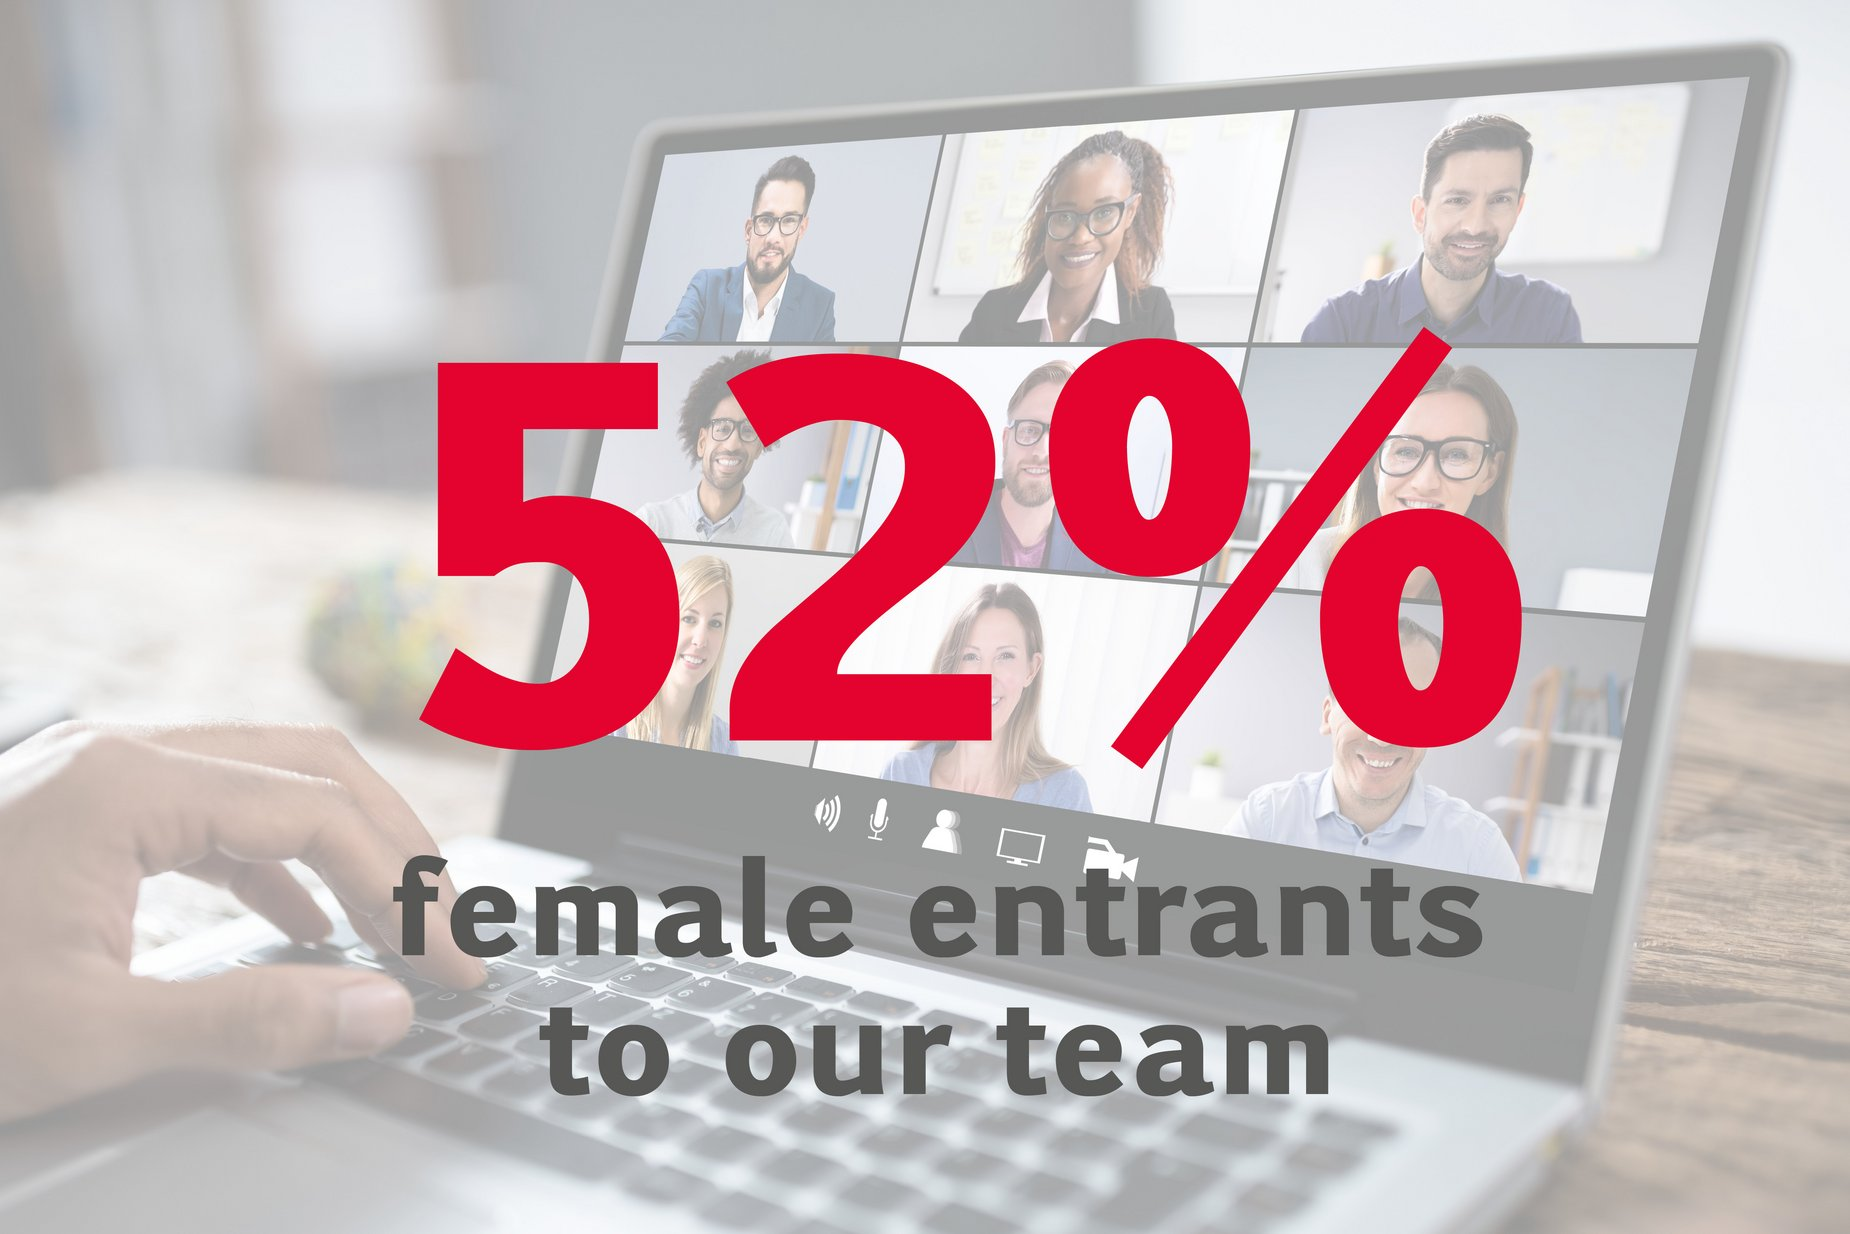 52 percent female entrants to our team